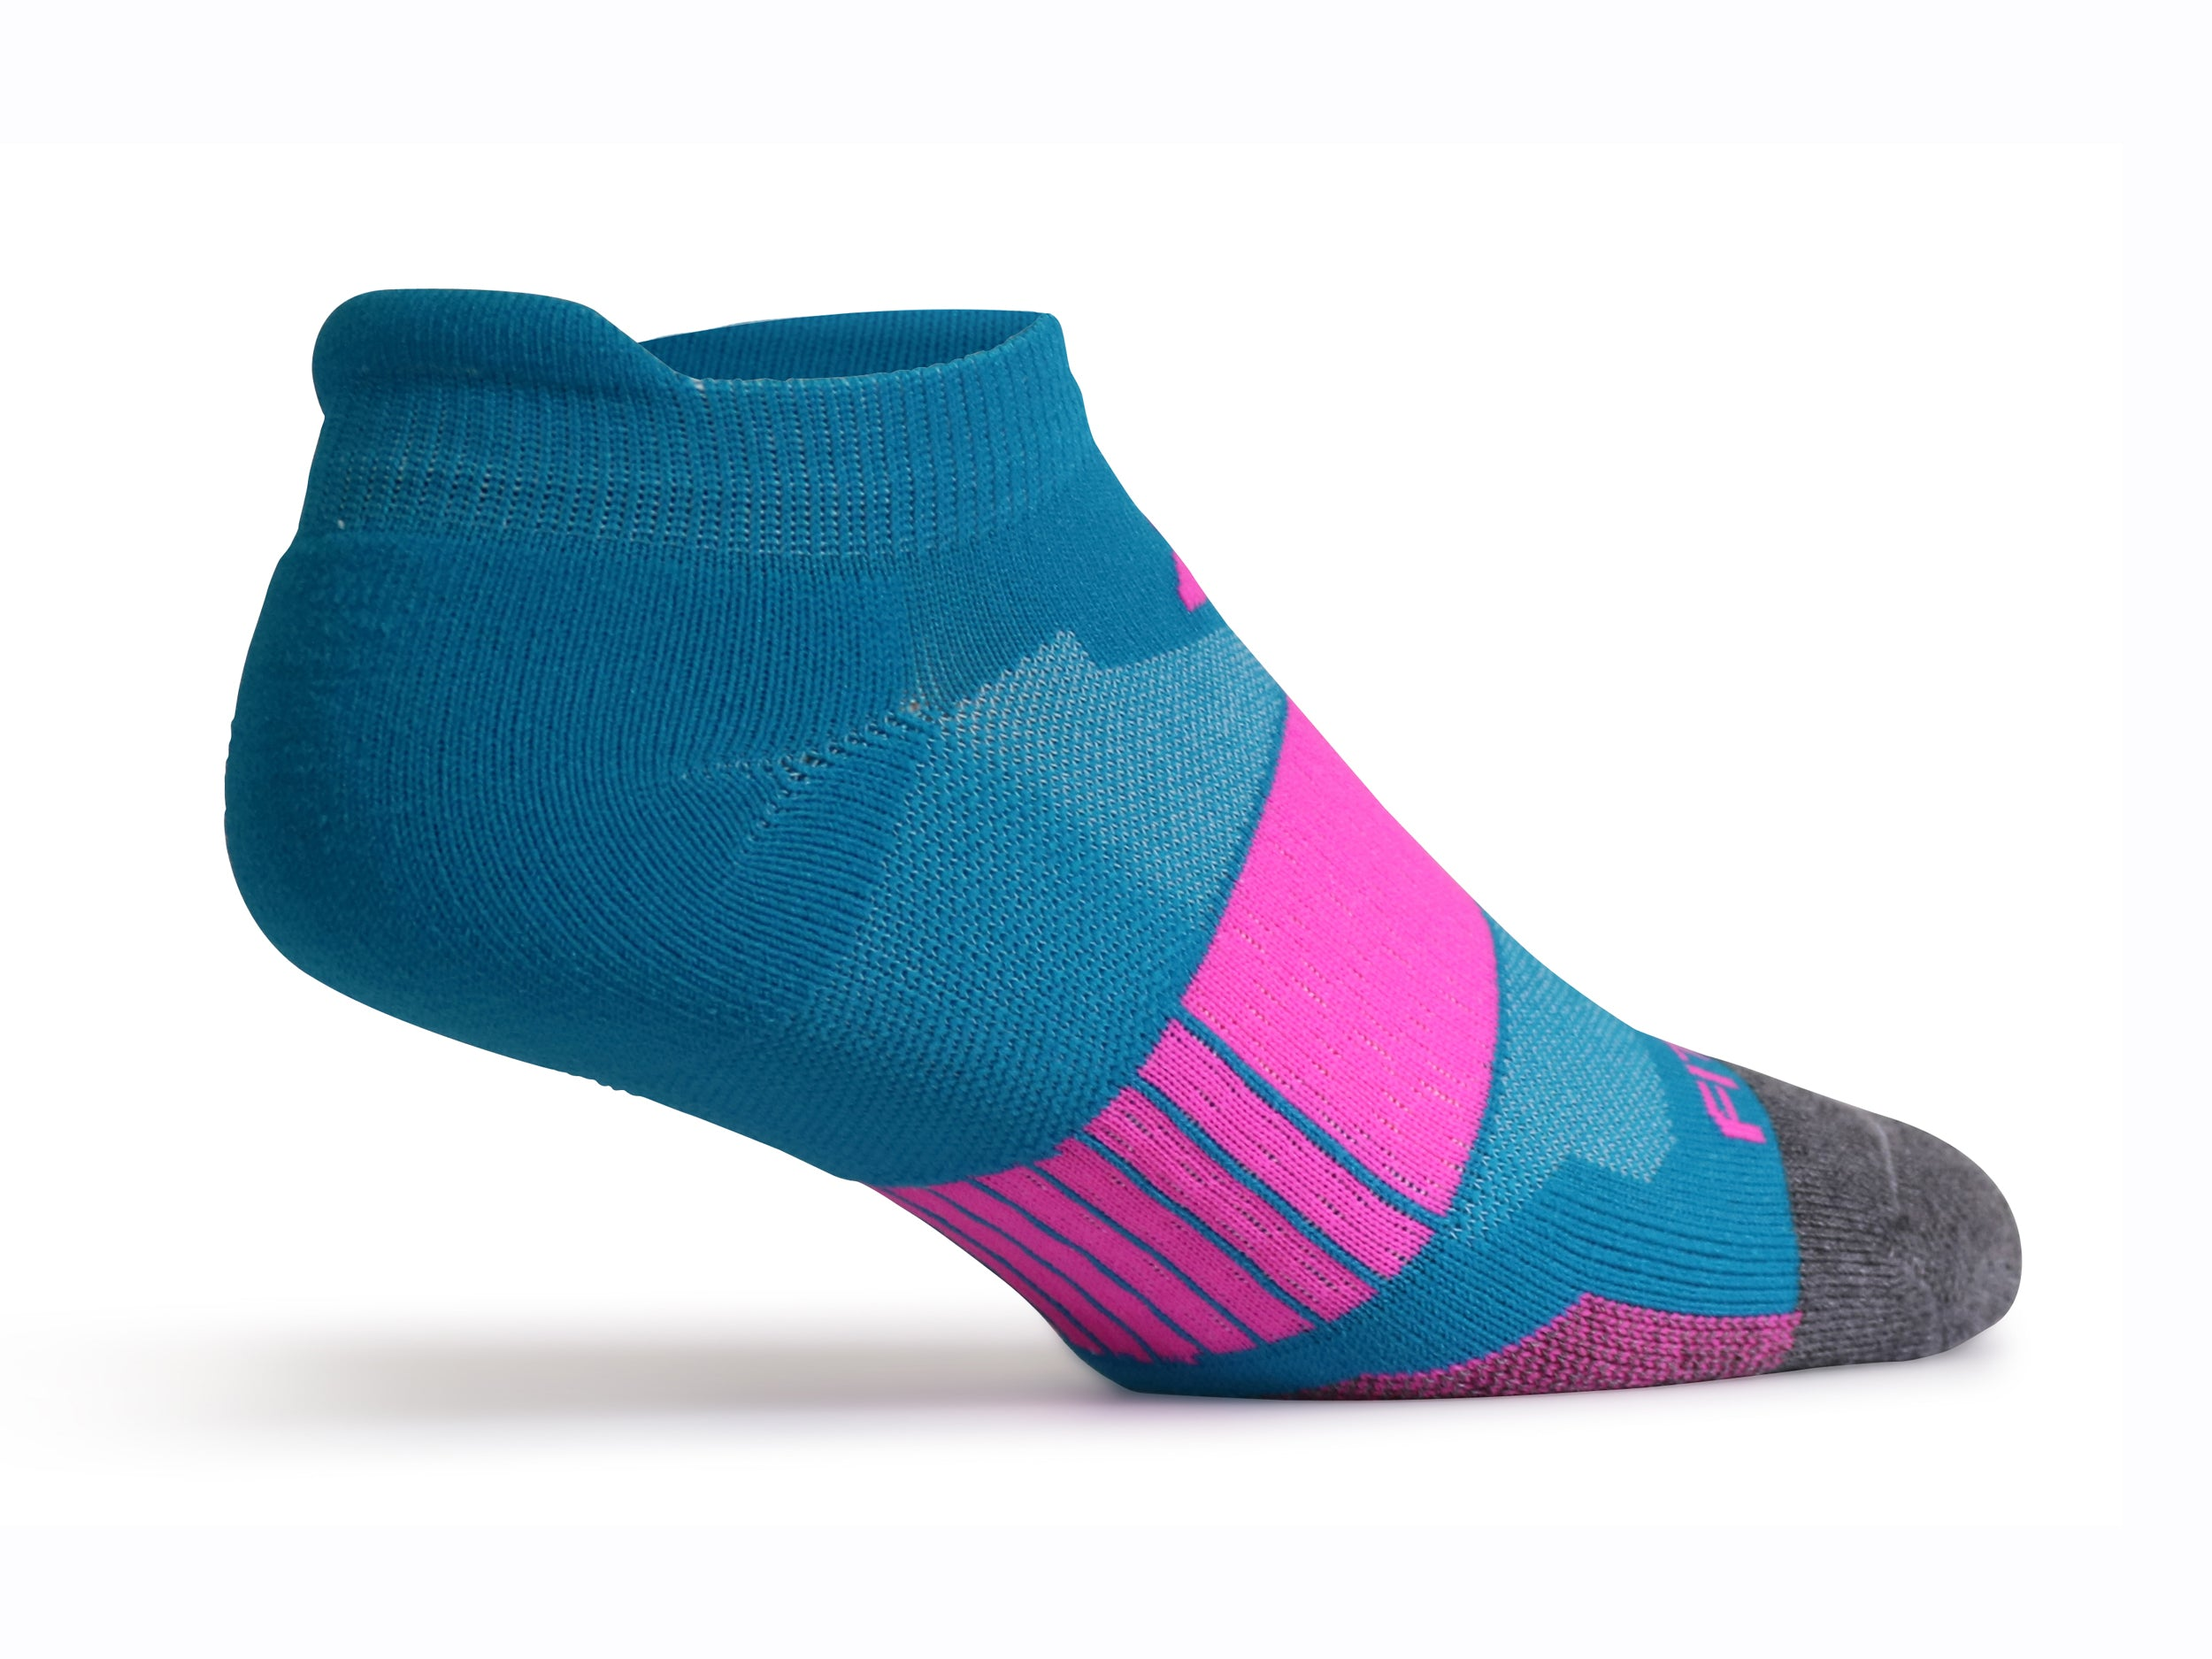 NP7 Mid-weight Tab (Teal & Pink) - Fitsok.com